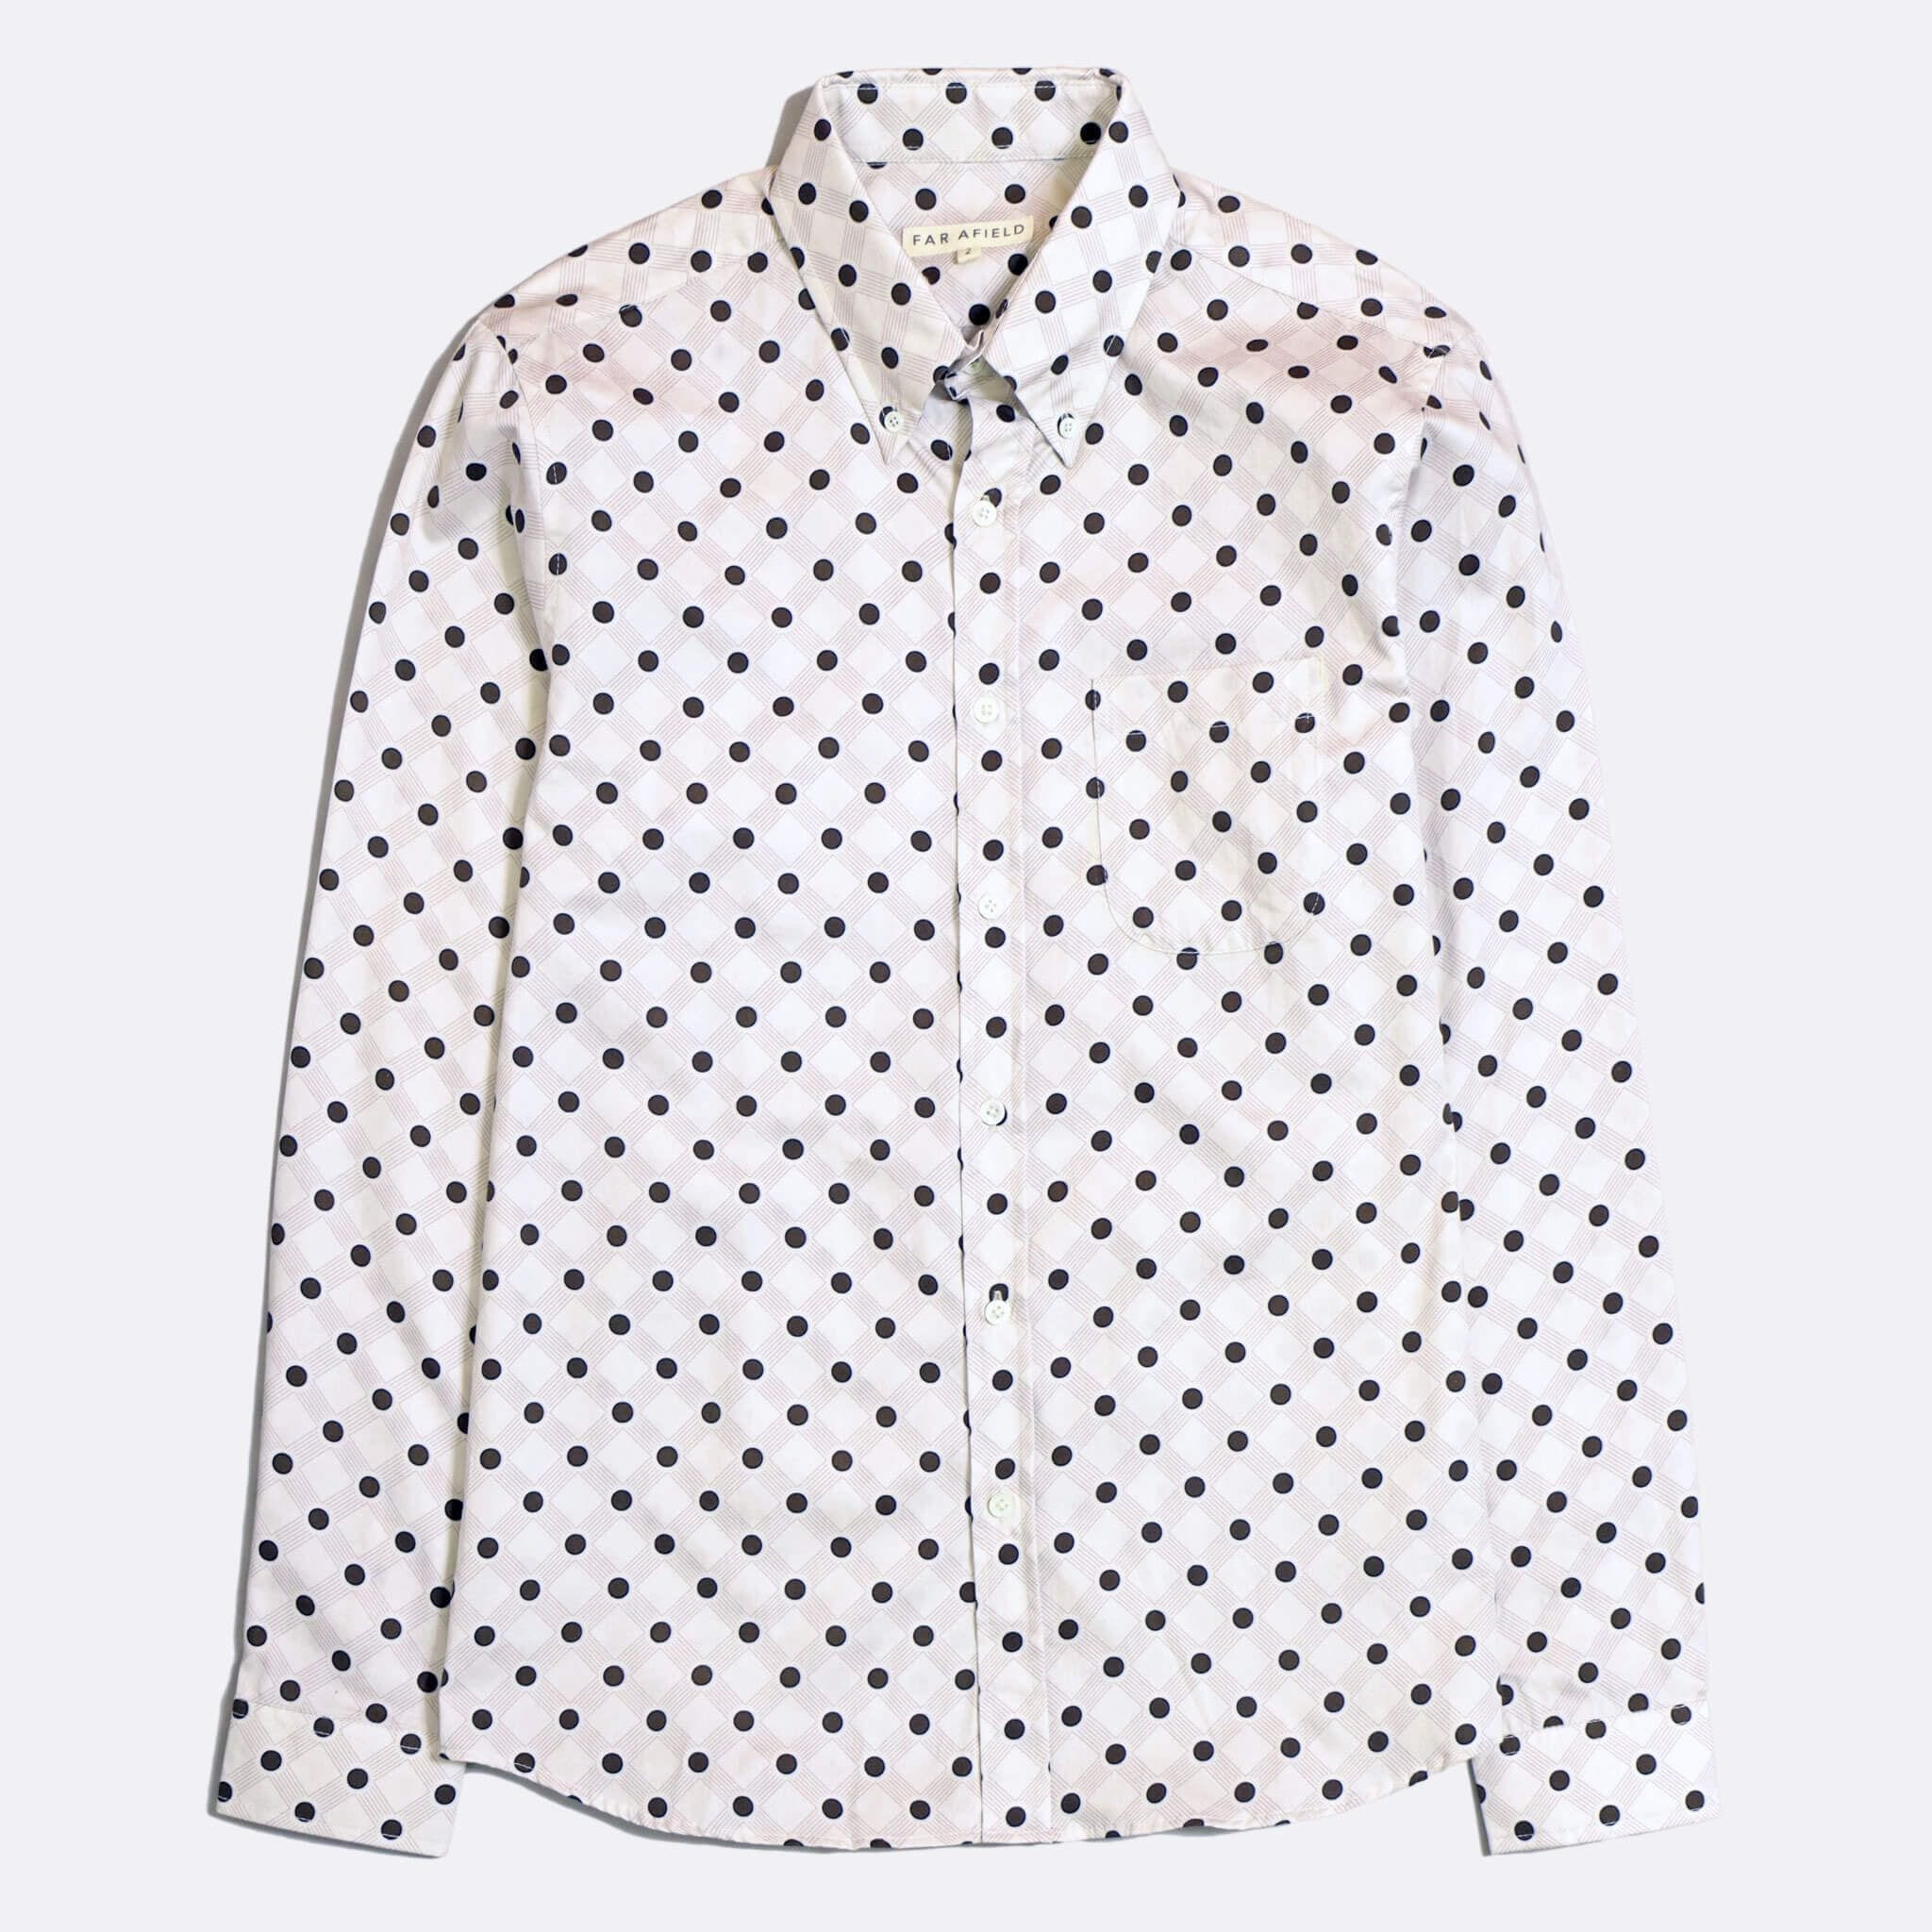 Far Afield Mod Button Down Long Sleeve Shirt a White Organic Cotton Classic Fabric Tailored Smart Casual